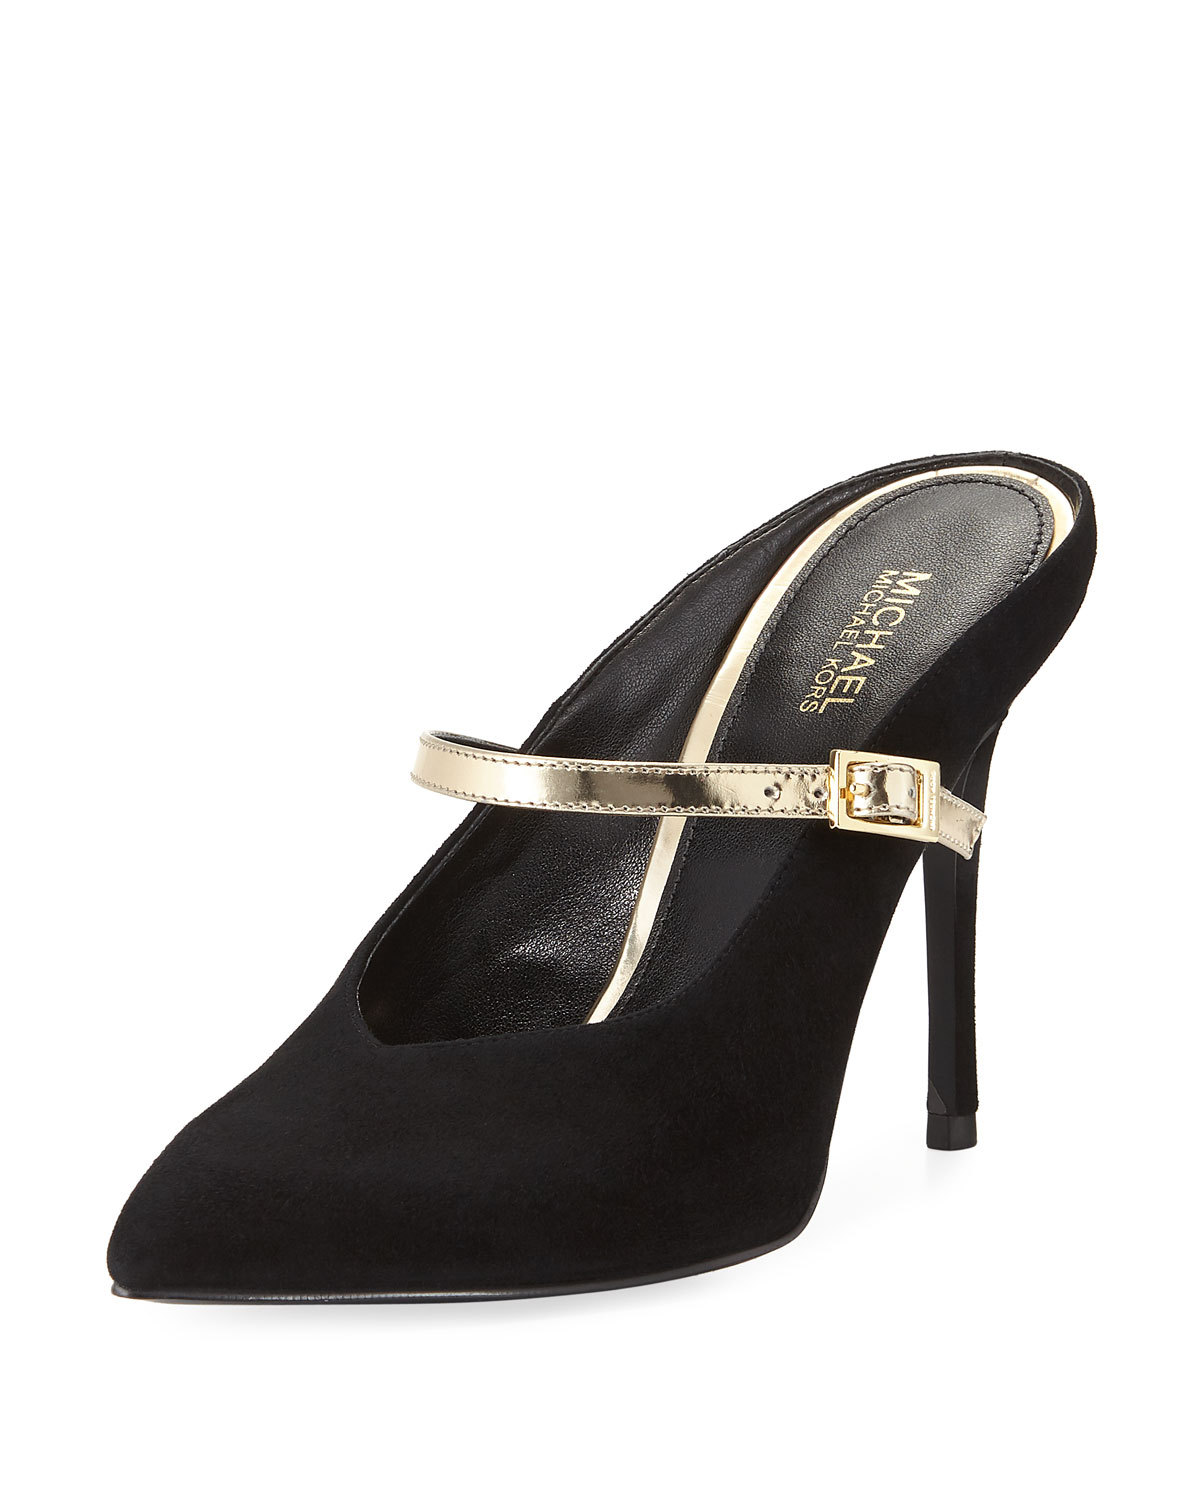 Primary image for MICHAEL Michael Kors Tiegan Suede Mule with Metallic Mary Jane Strap Heel Shoes